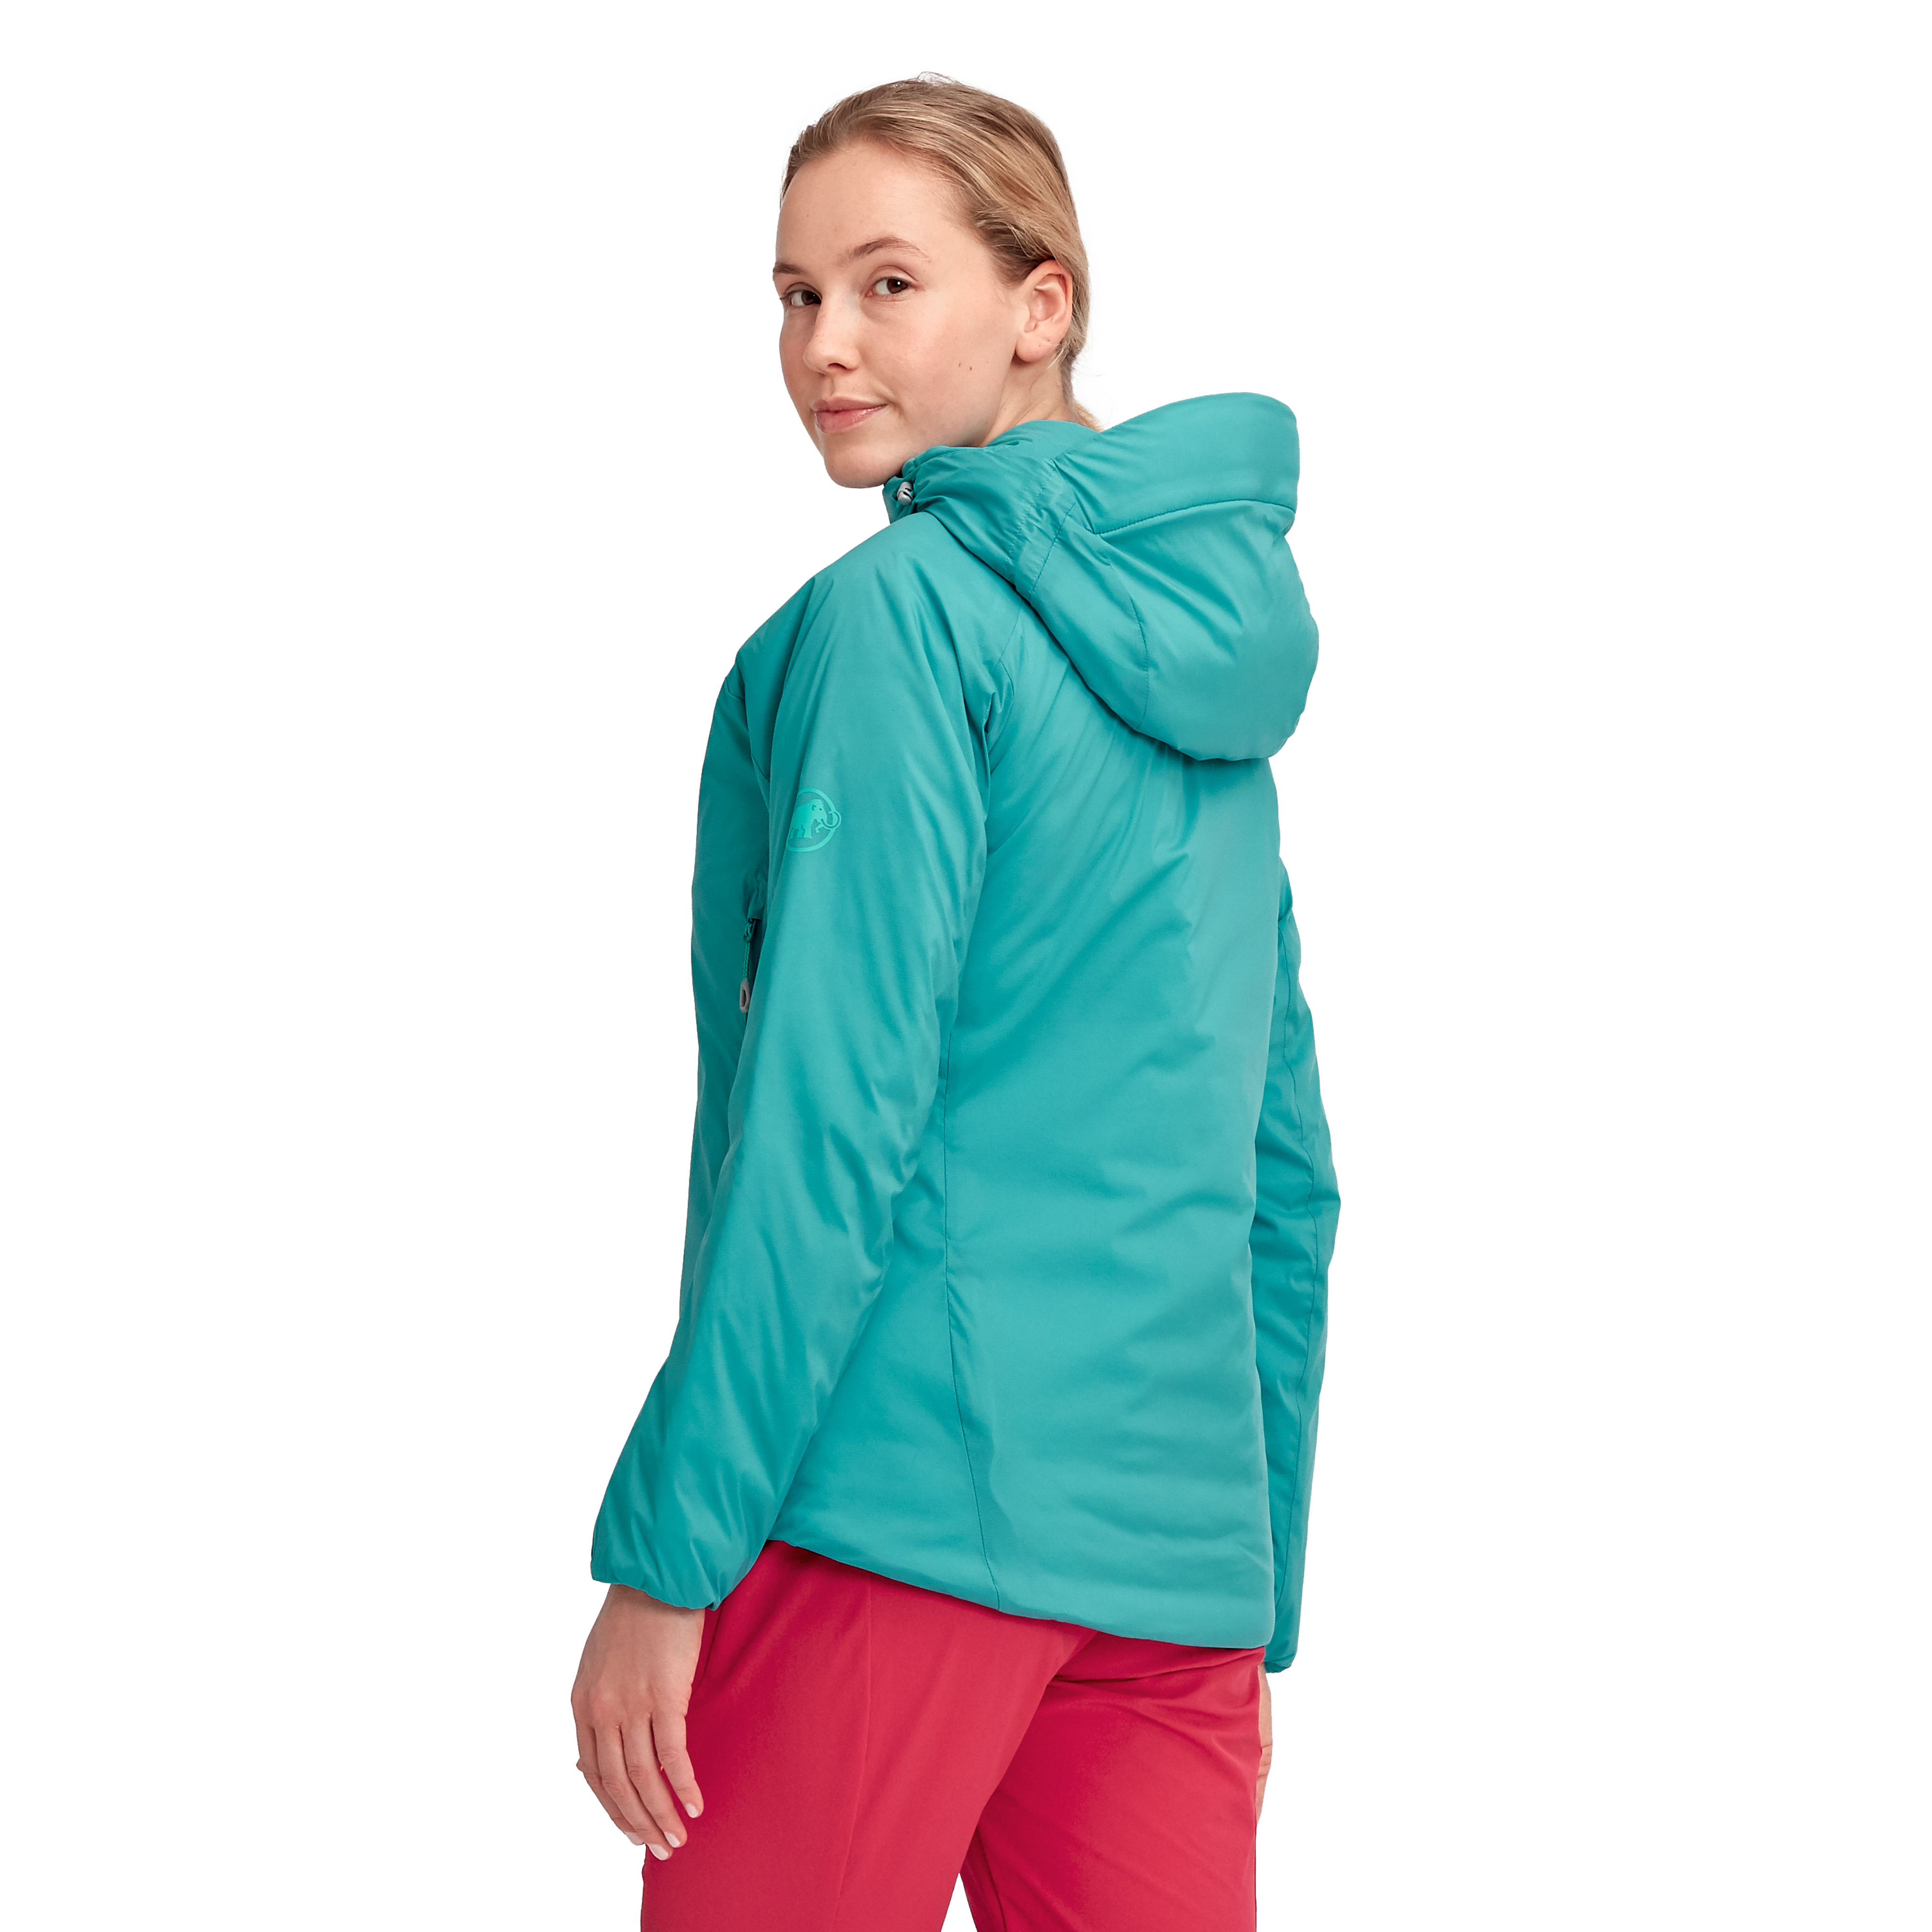 Rime IN Flex Hooded Jacket Women product image